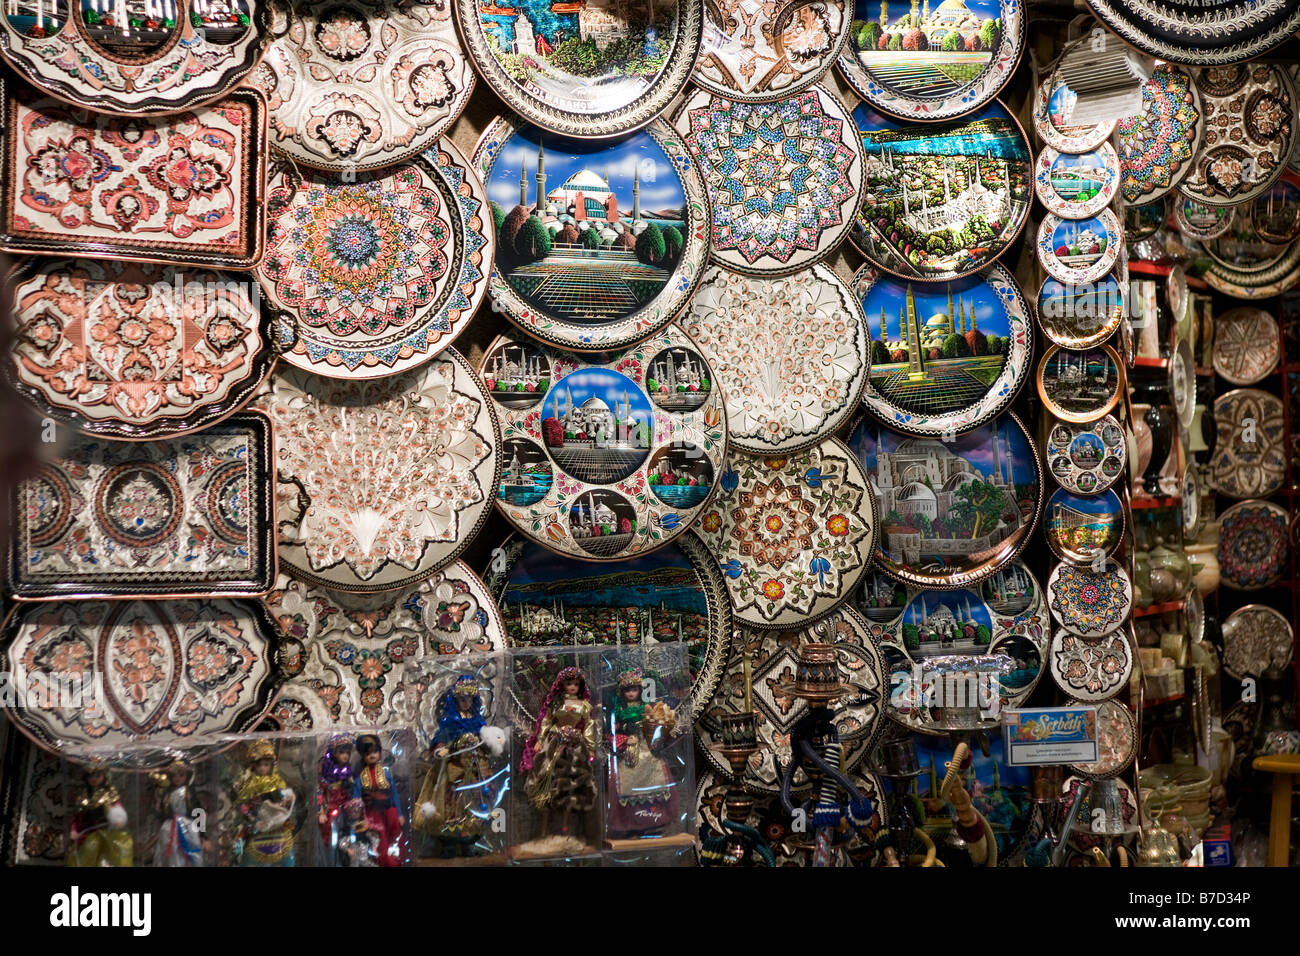 Souvenir plates for sale in Market, Istanbul, Turkey - Stock Image